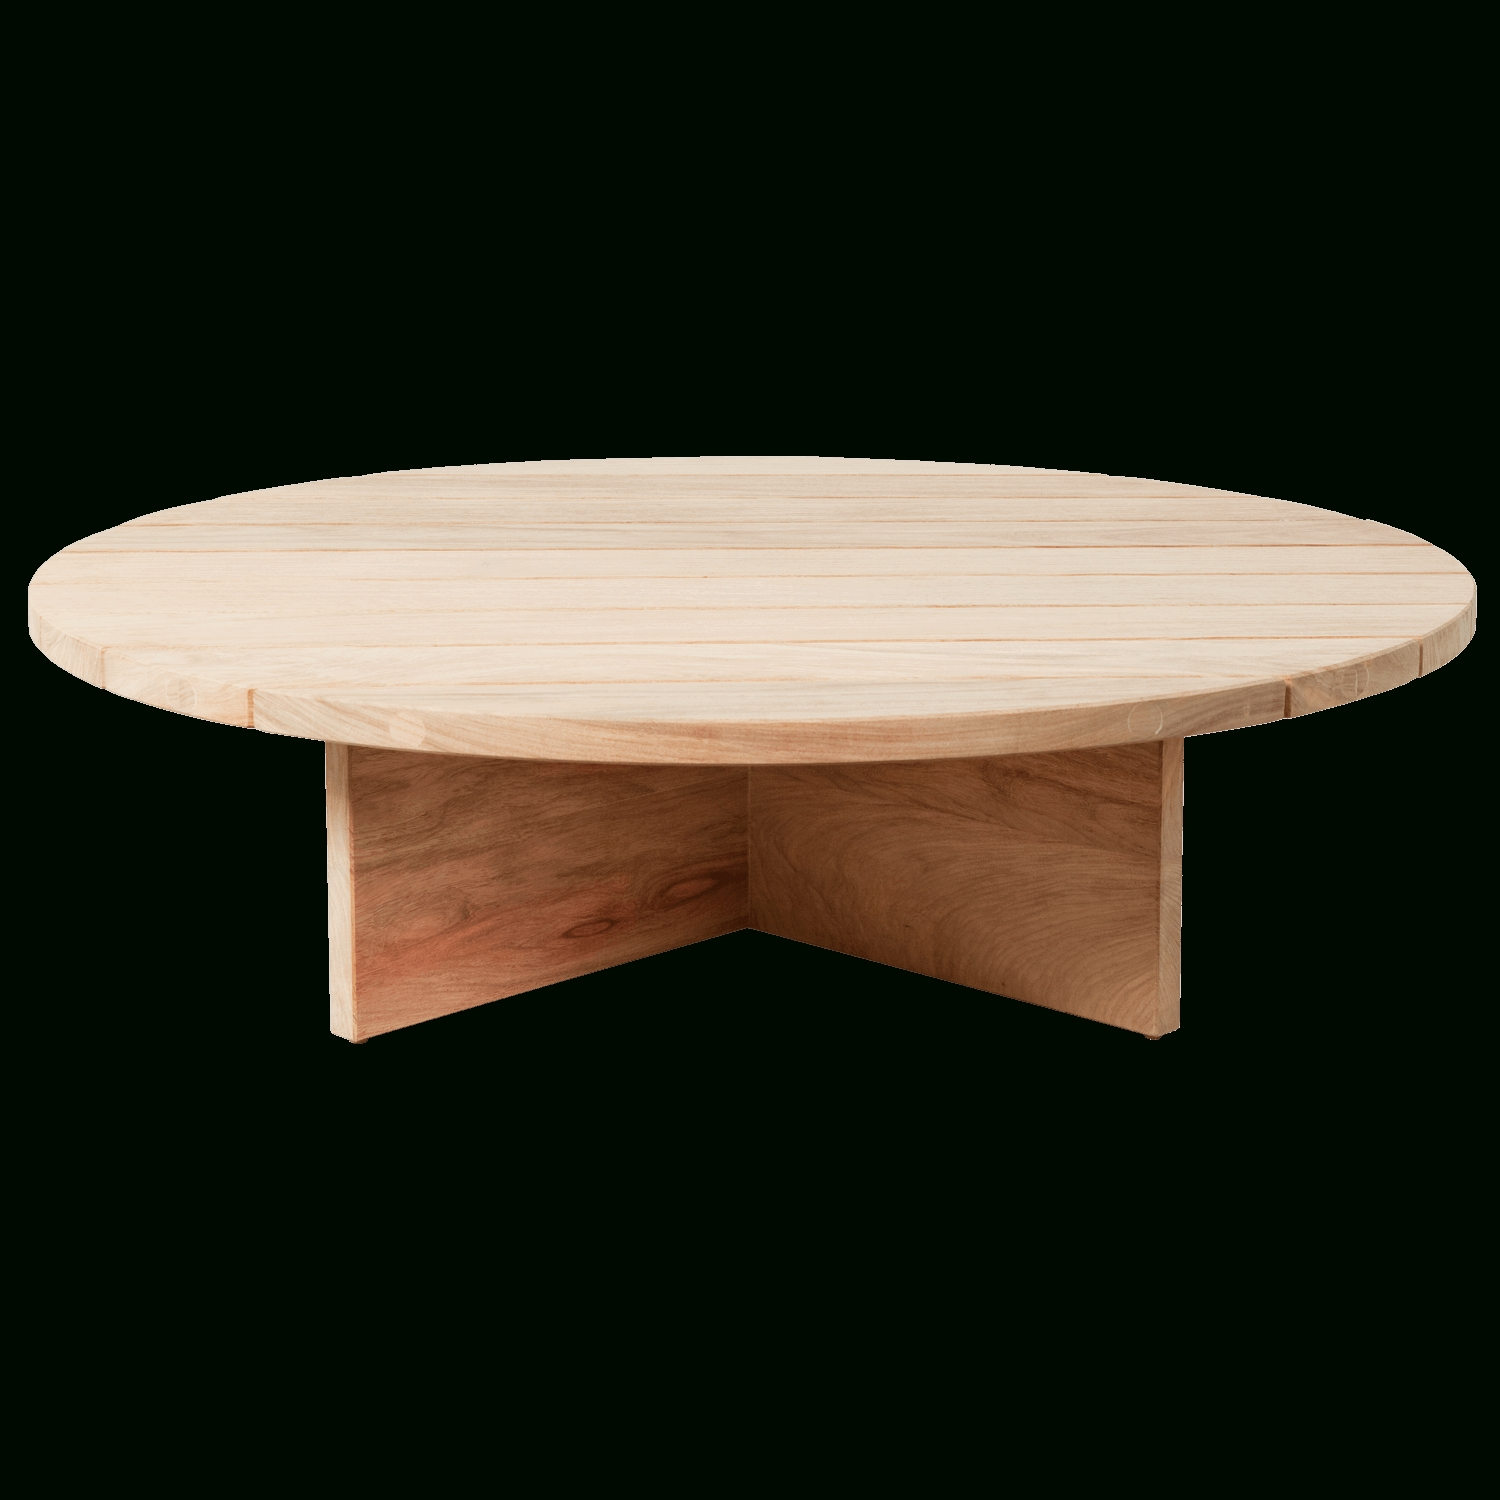 Chunky Coffee Table Round – Robert Plumb Store Intended For Recent Chunky Coffee Tables (View 8 of 20)